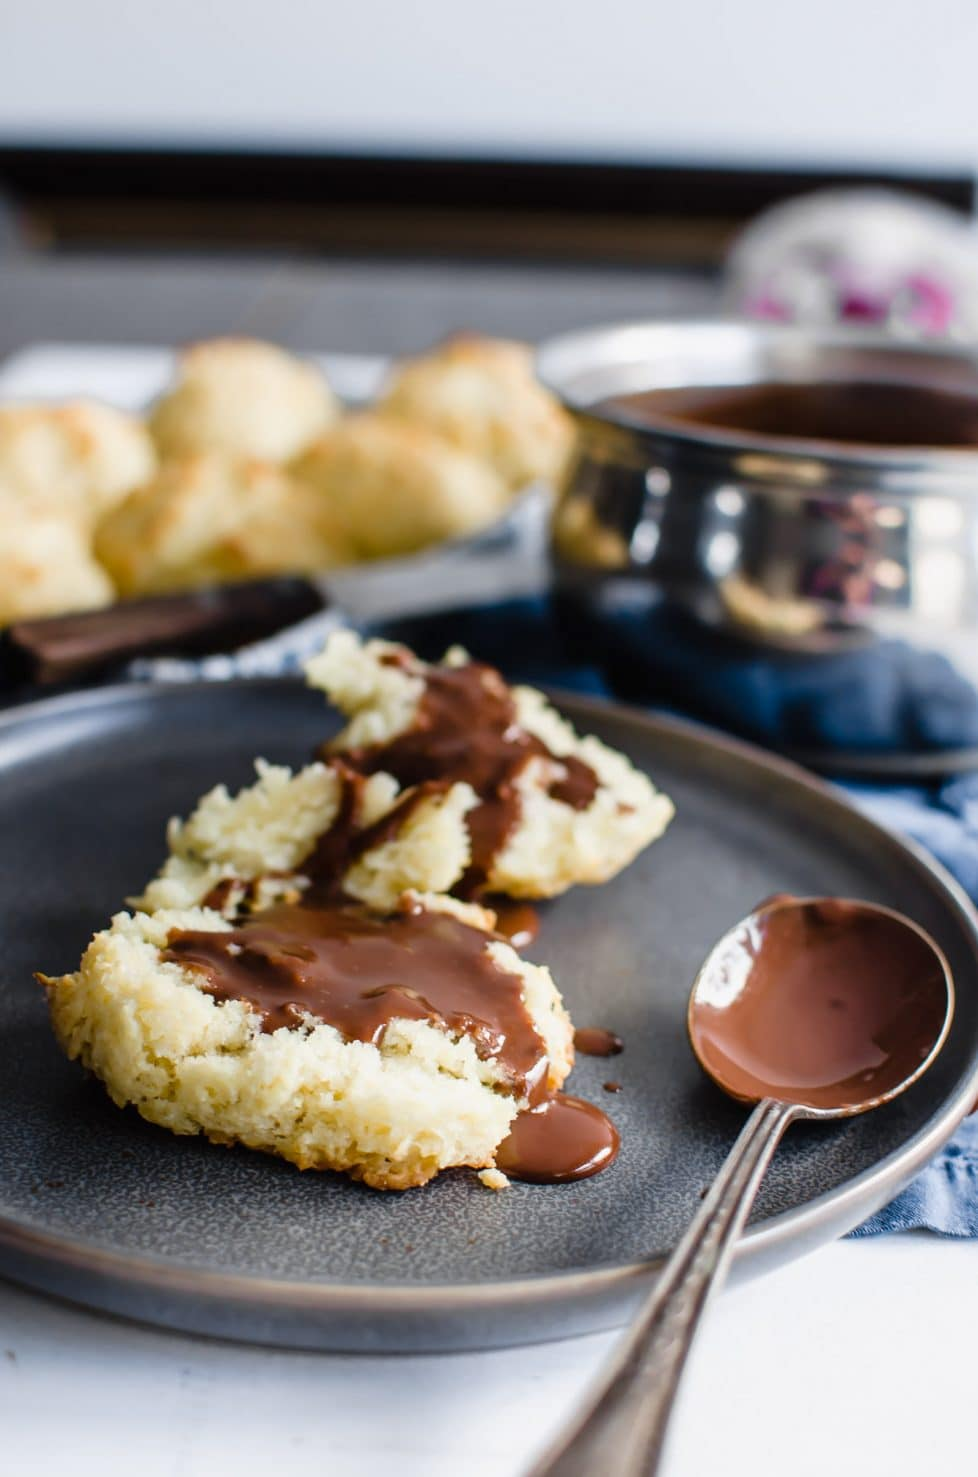 This recipe for Smooth and Silky Chocolate Gravy with Buttermilk Drop Biscuits is an old-fashioned, Southern breakfast dish that is perfect to serve for Valentine's Day or on a cozy winter morning!